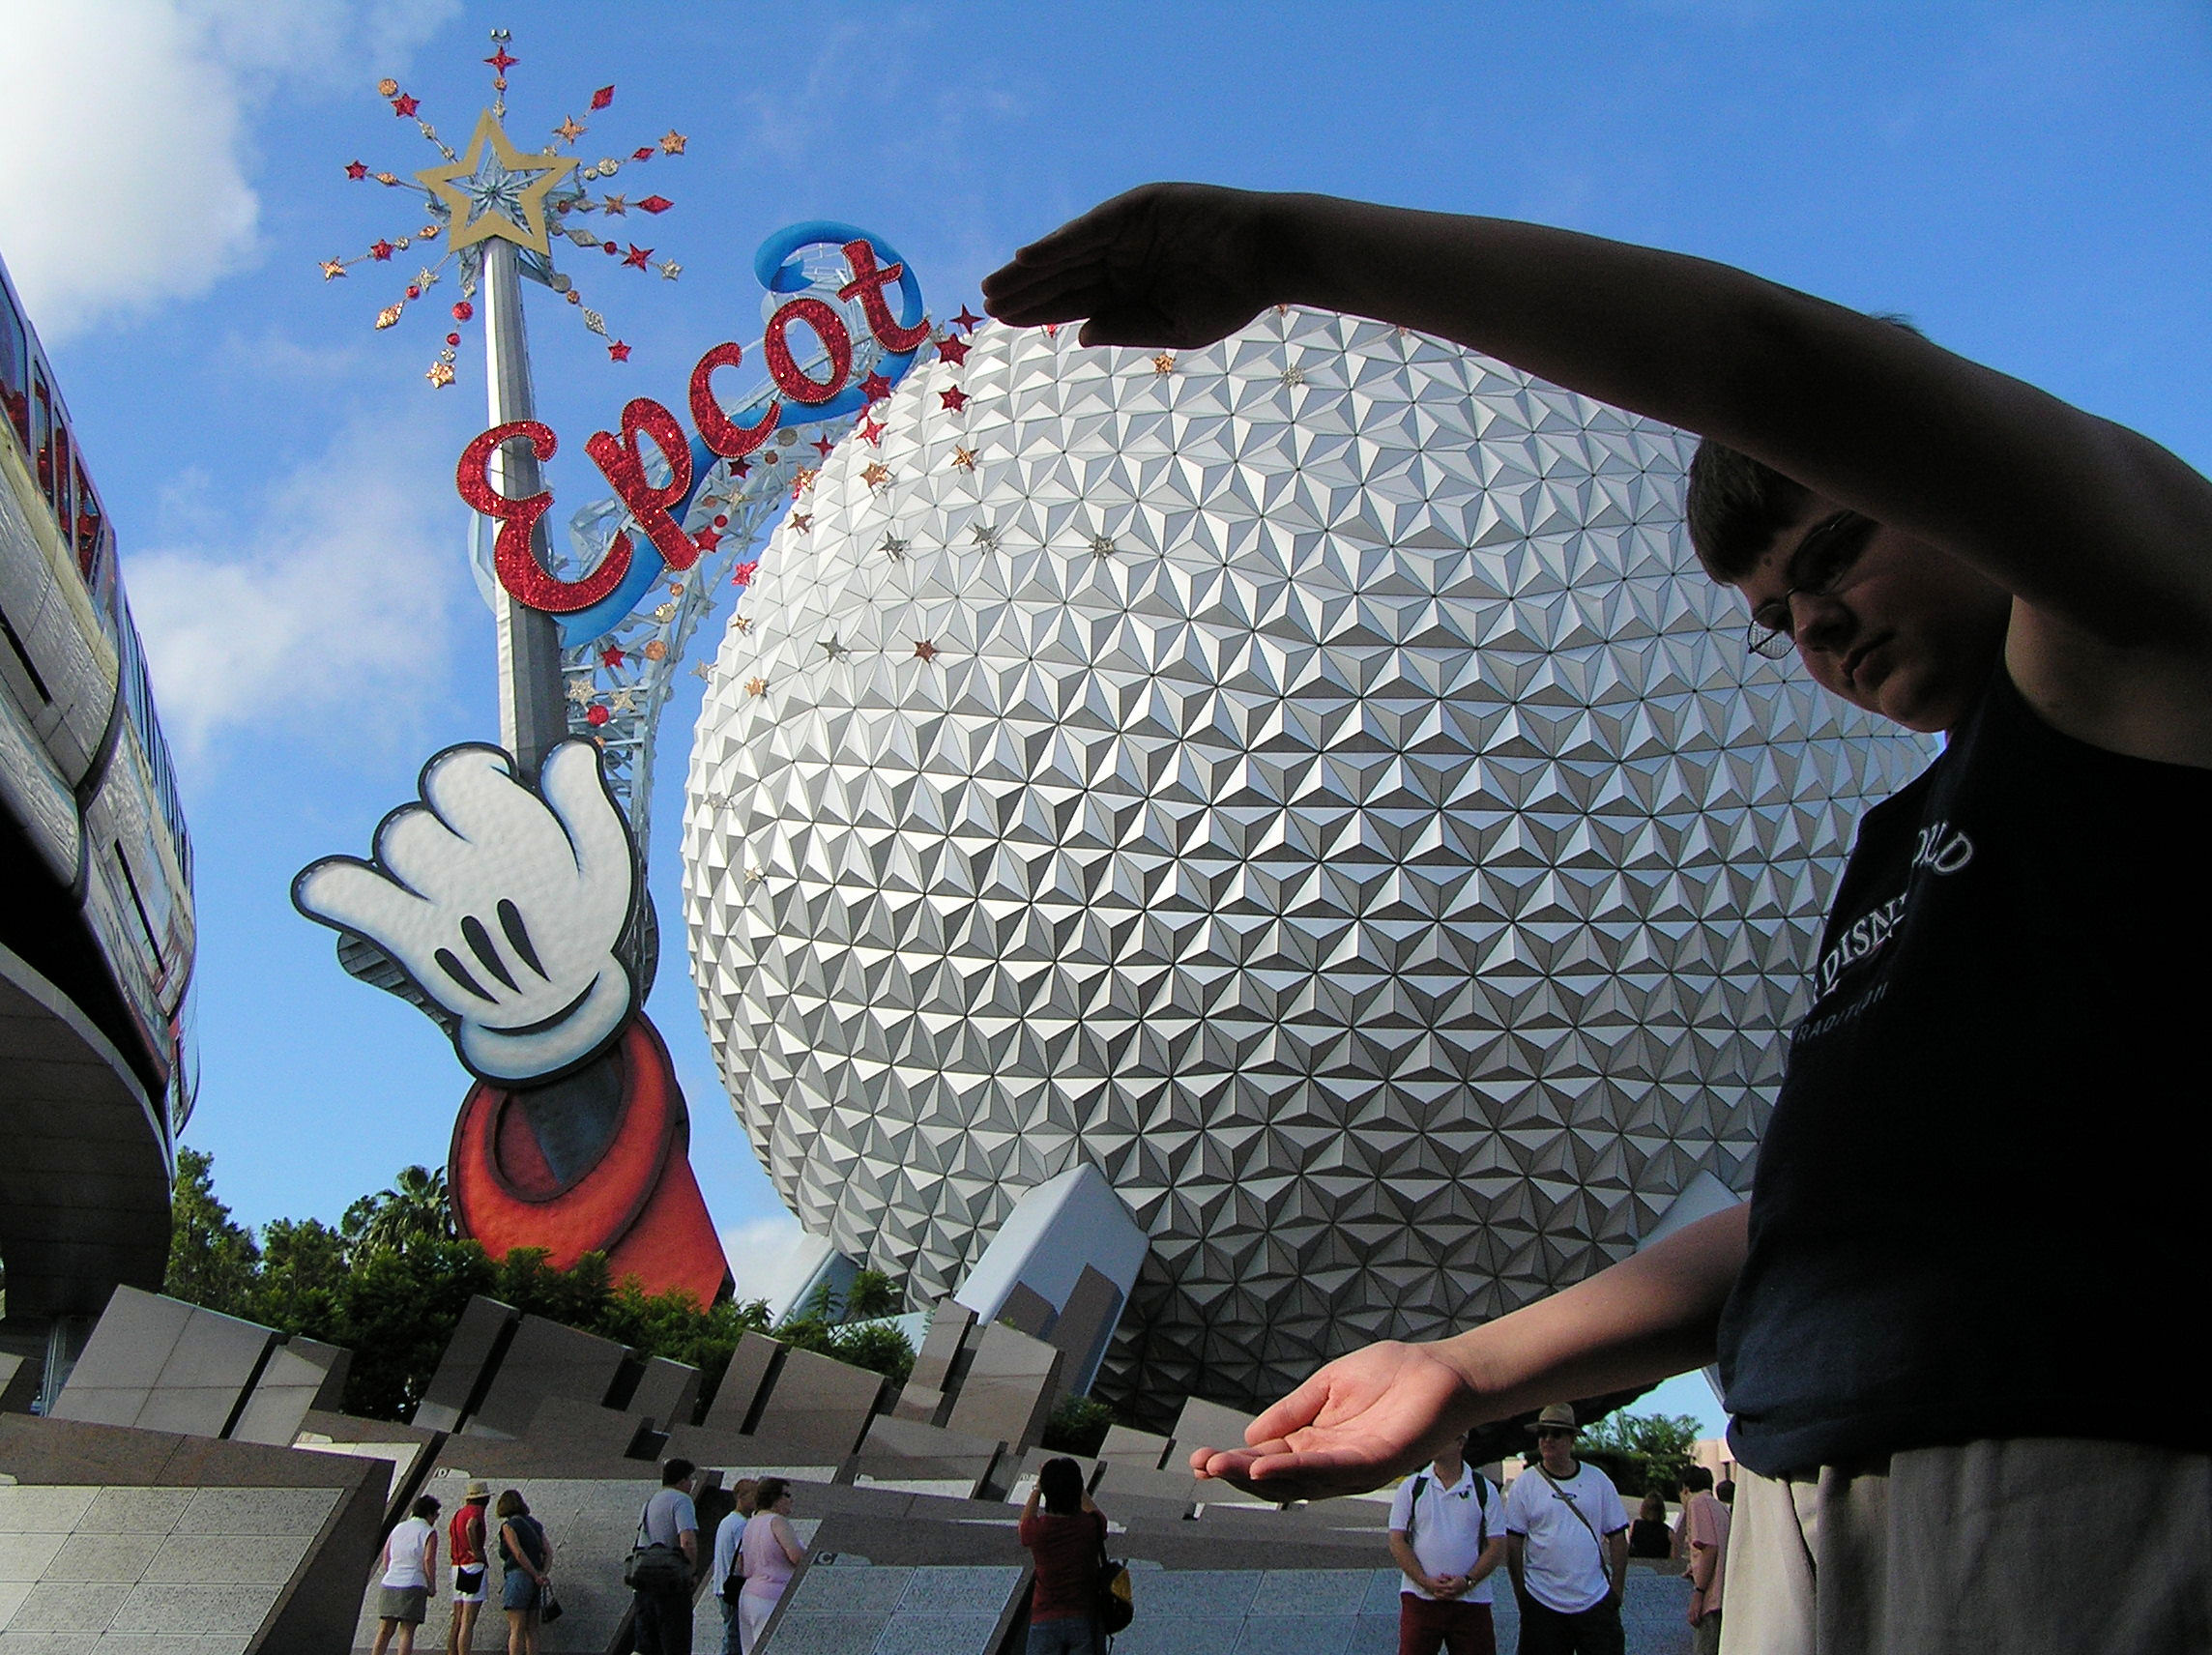 Here I am holding the big ball (Spaceship Earth) at EPCOT.